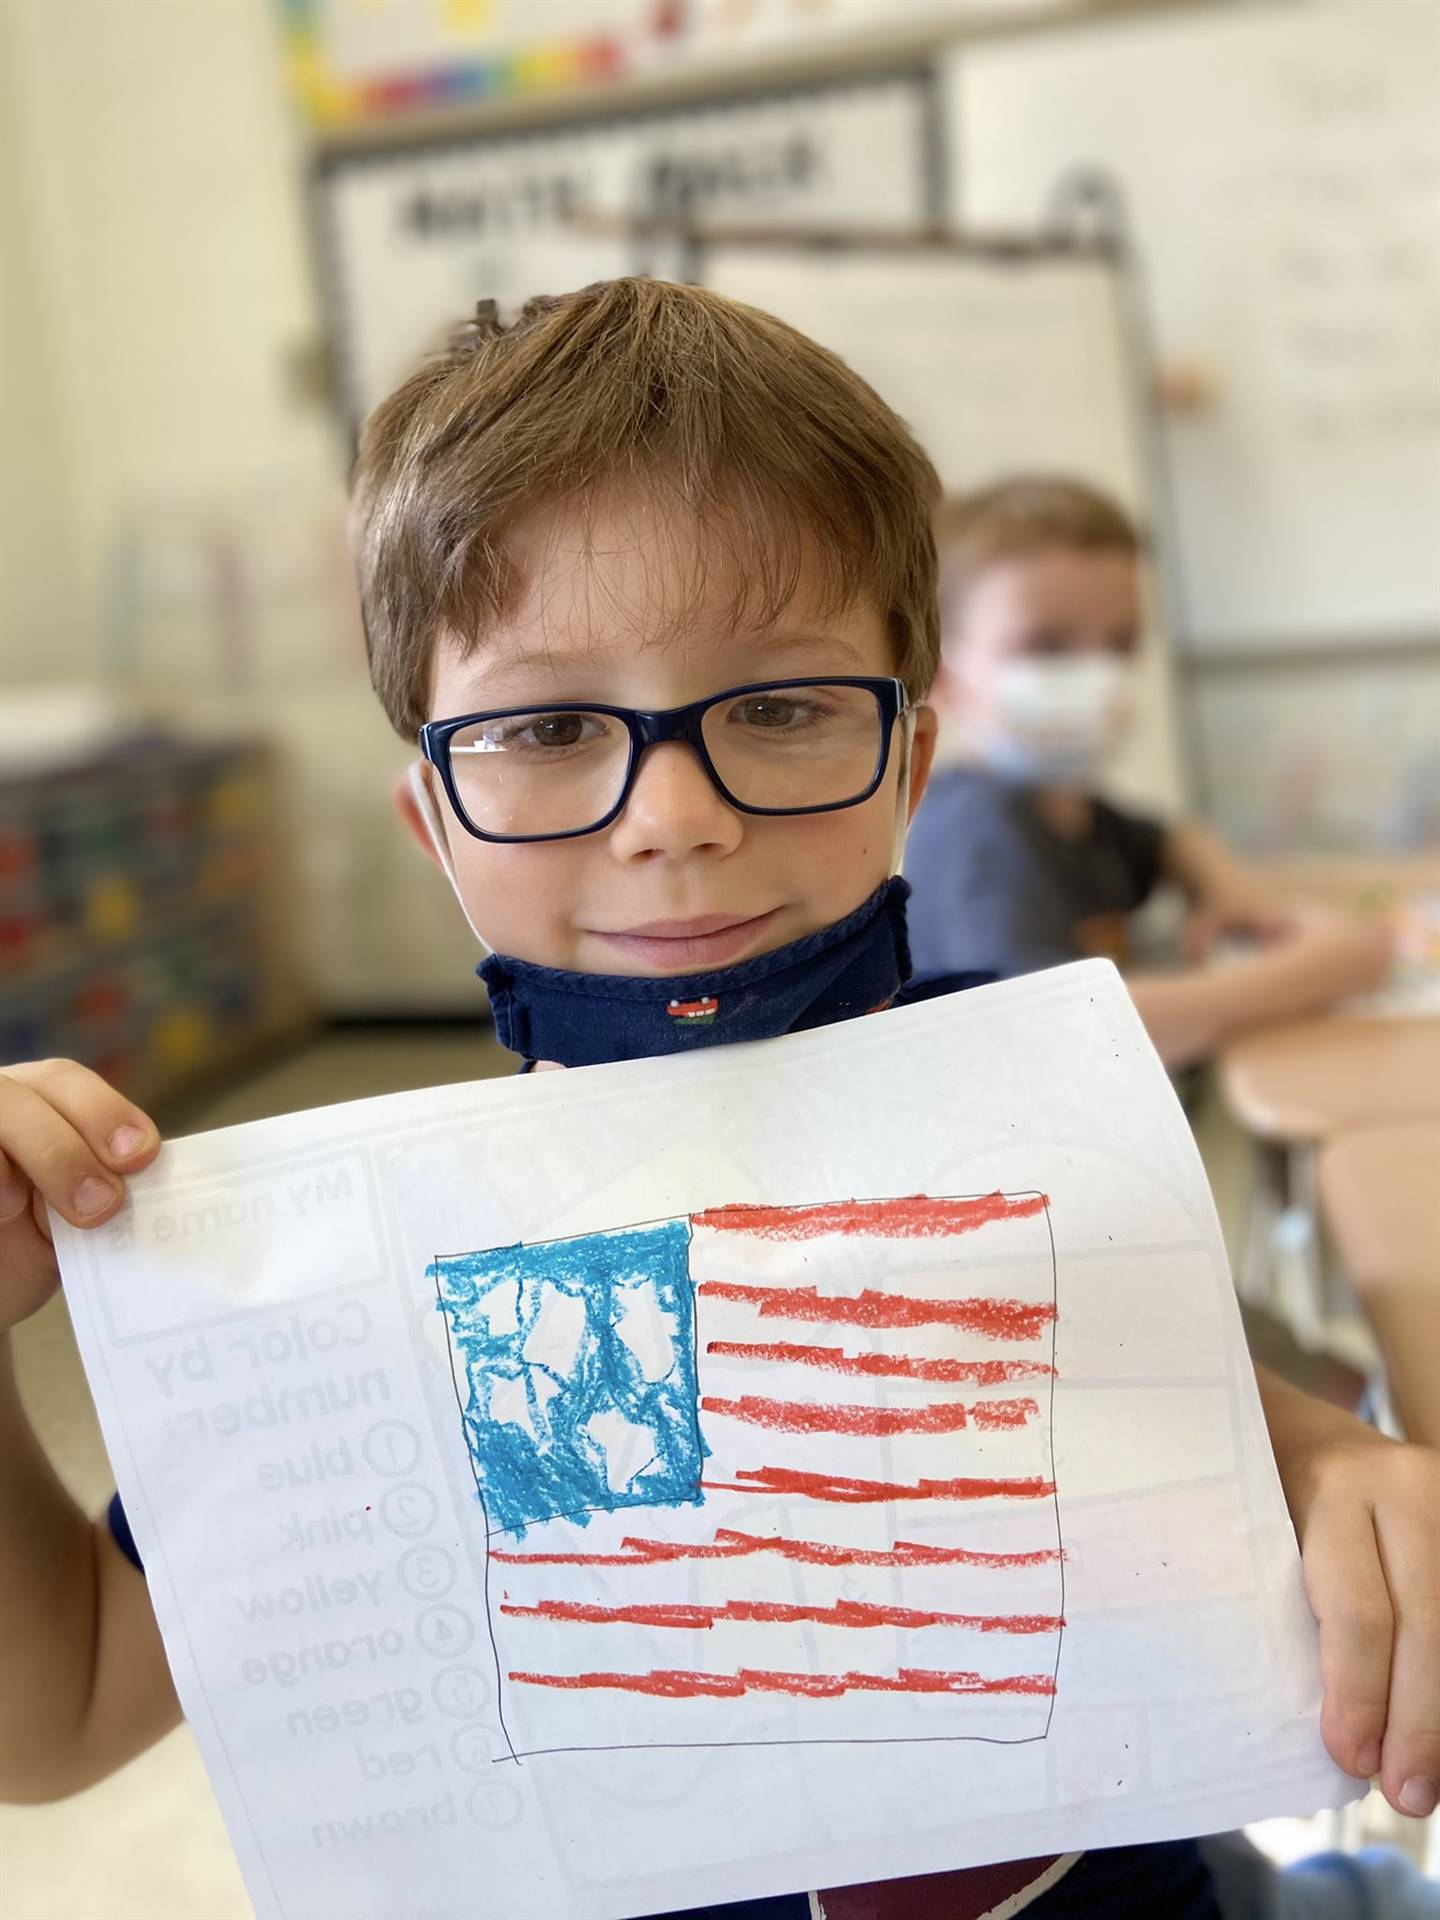 Photo 30:  Munson student standing in the classroom holding up his drawing of the American flag